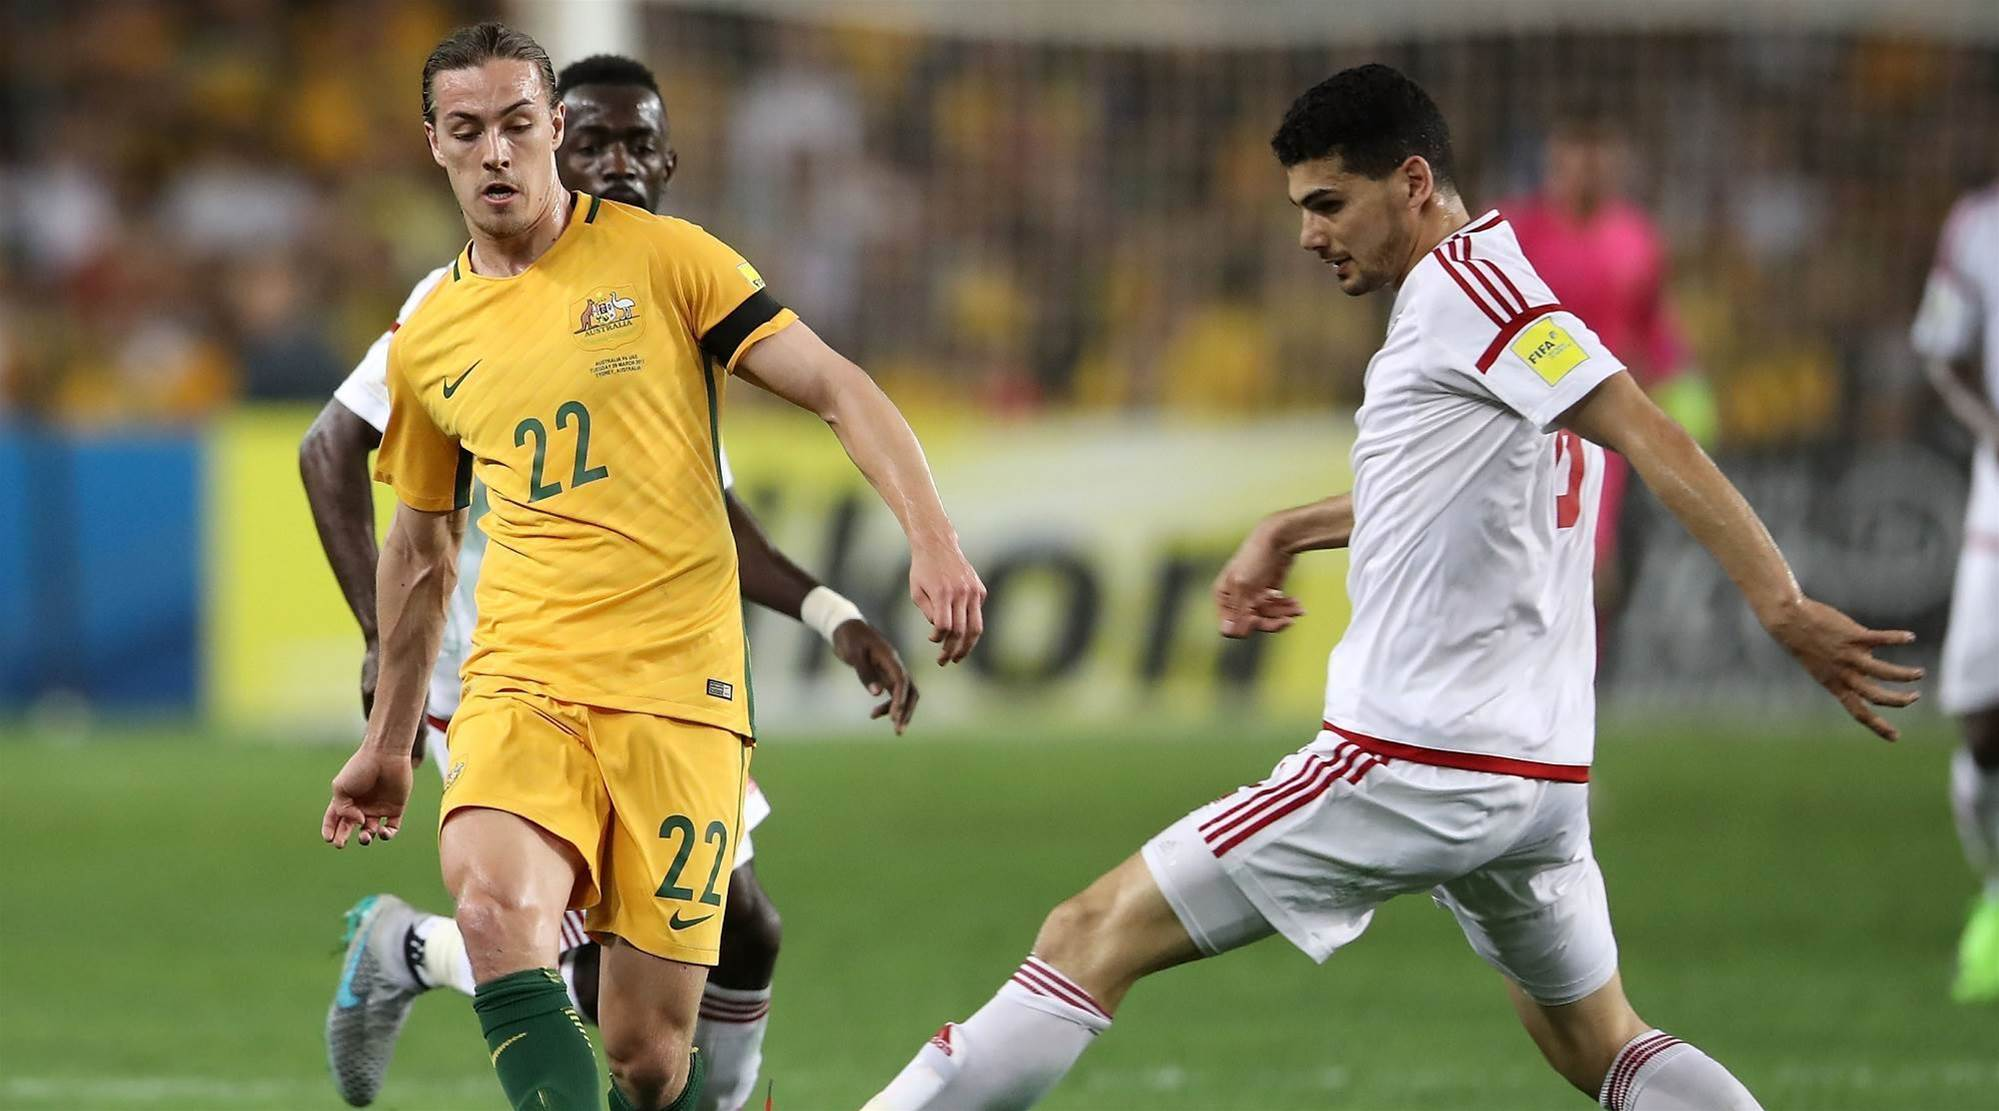 Is Irvine the long-term replacement for Jedinak?